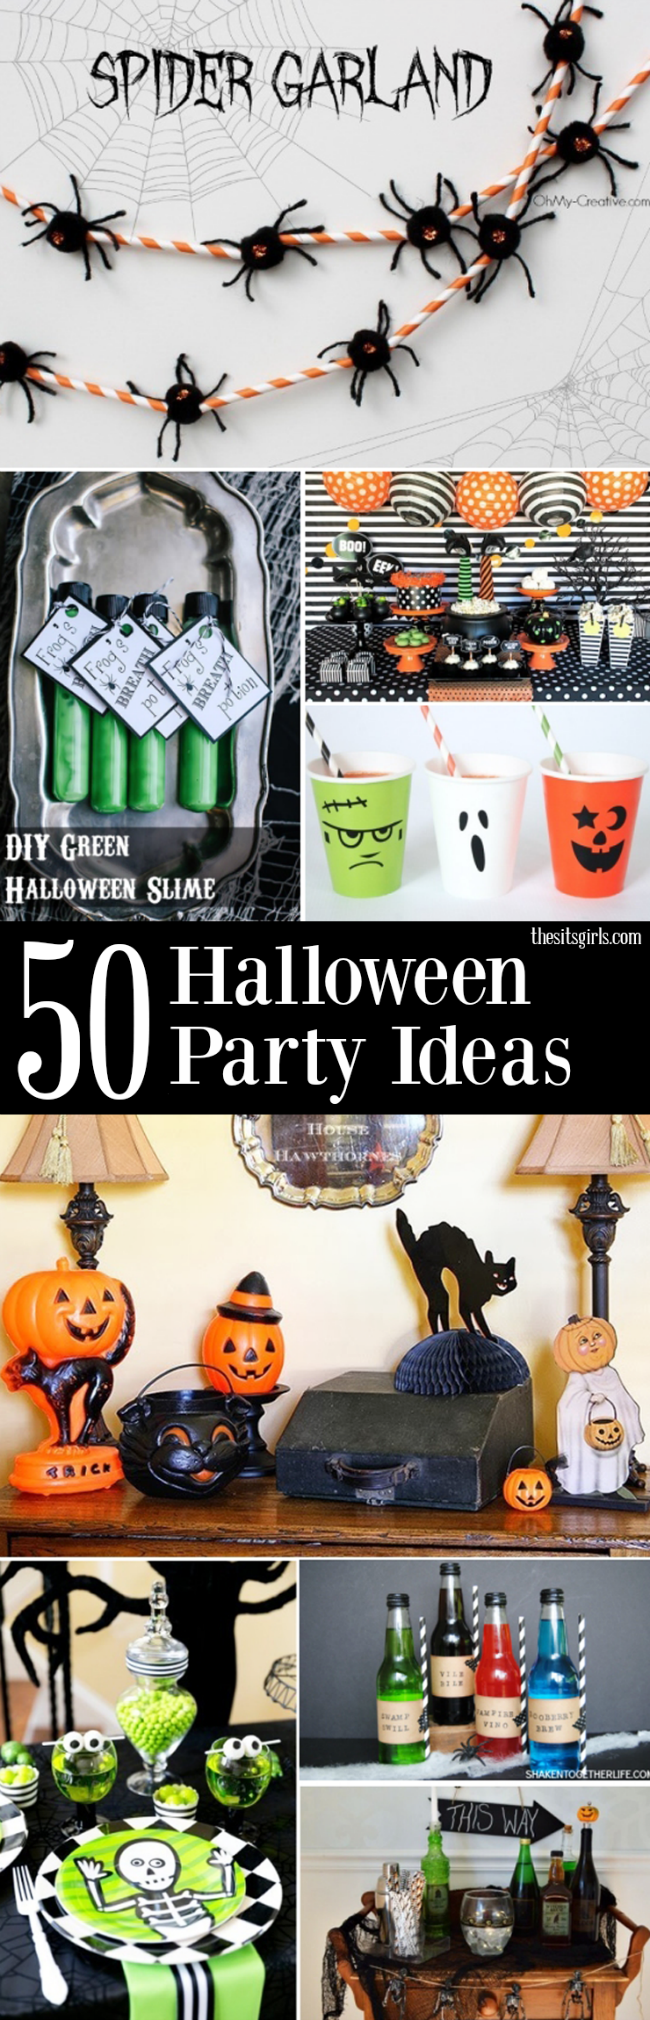 Great Halloween party ideas to help you throw the perfect party - with cute party food, Halloween decor, party favors and more!